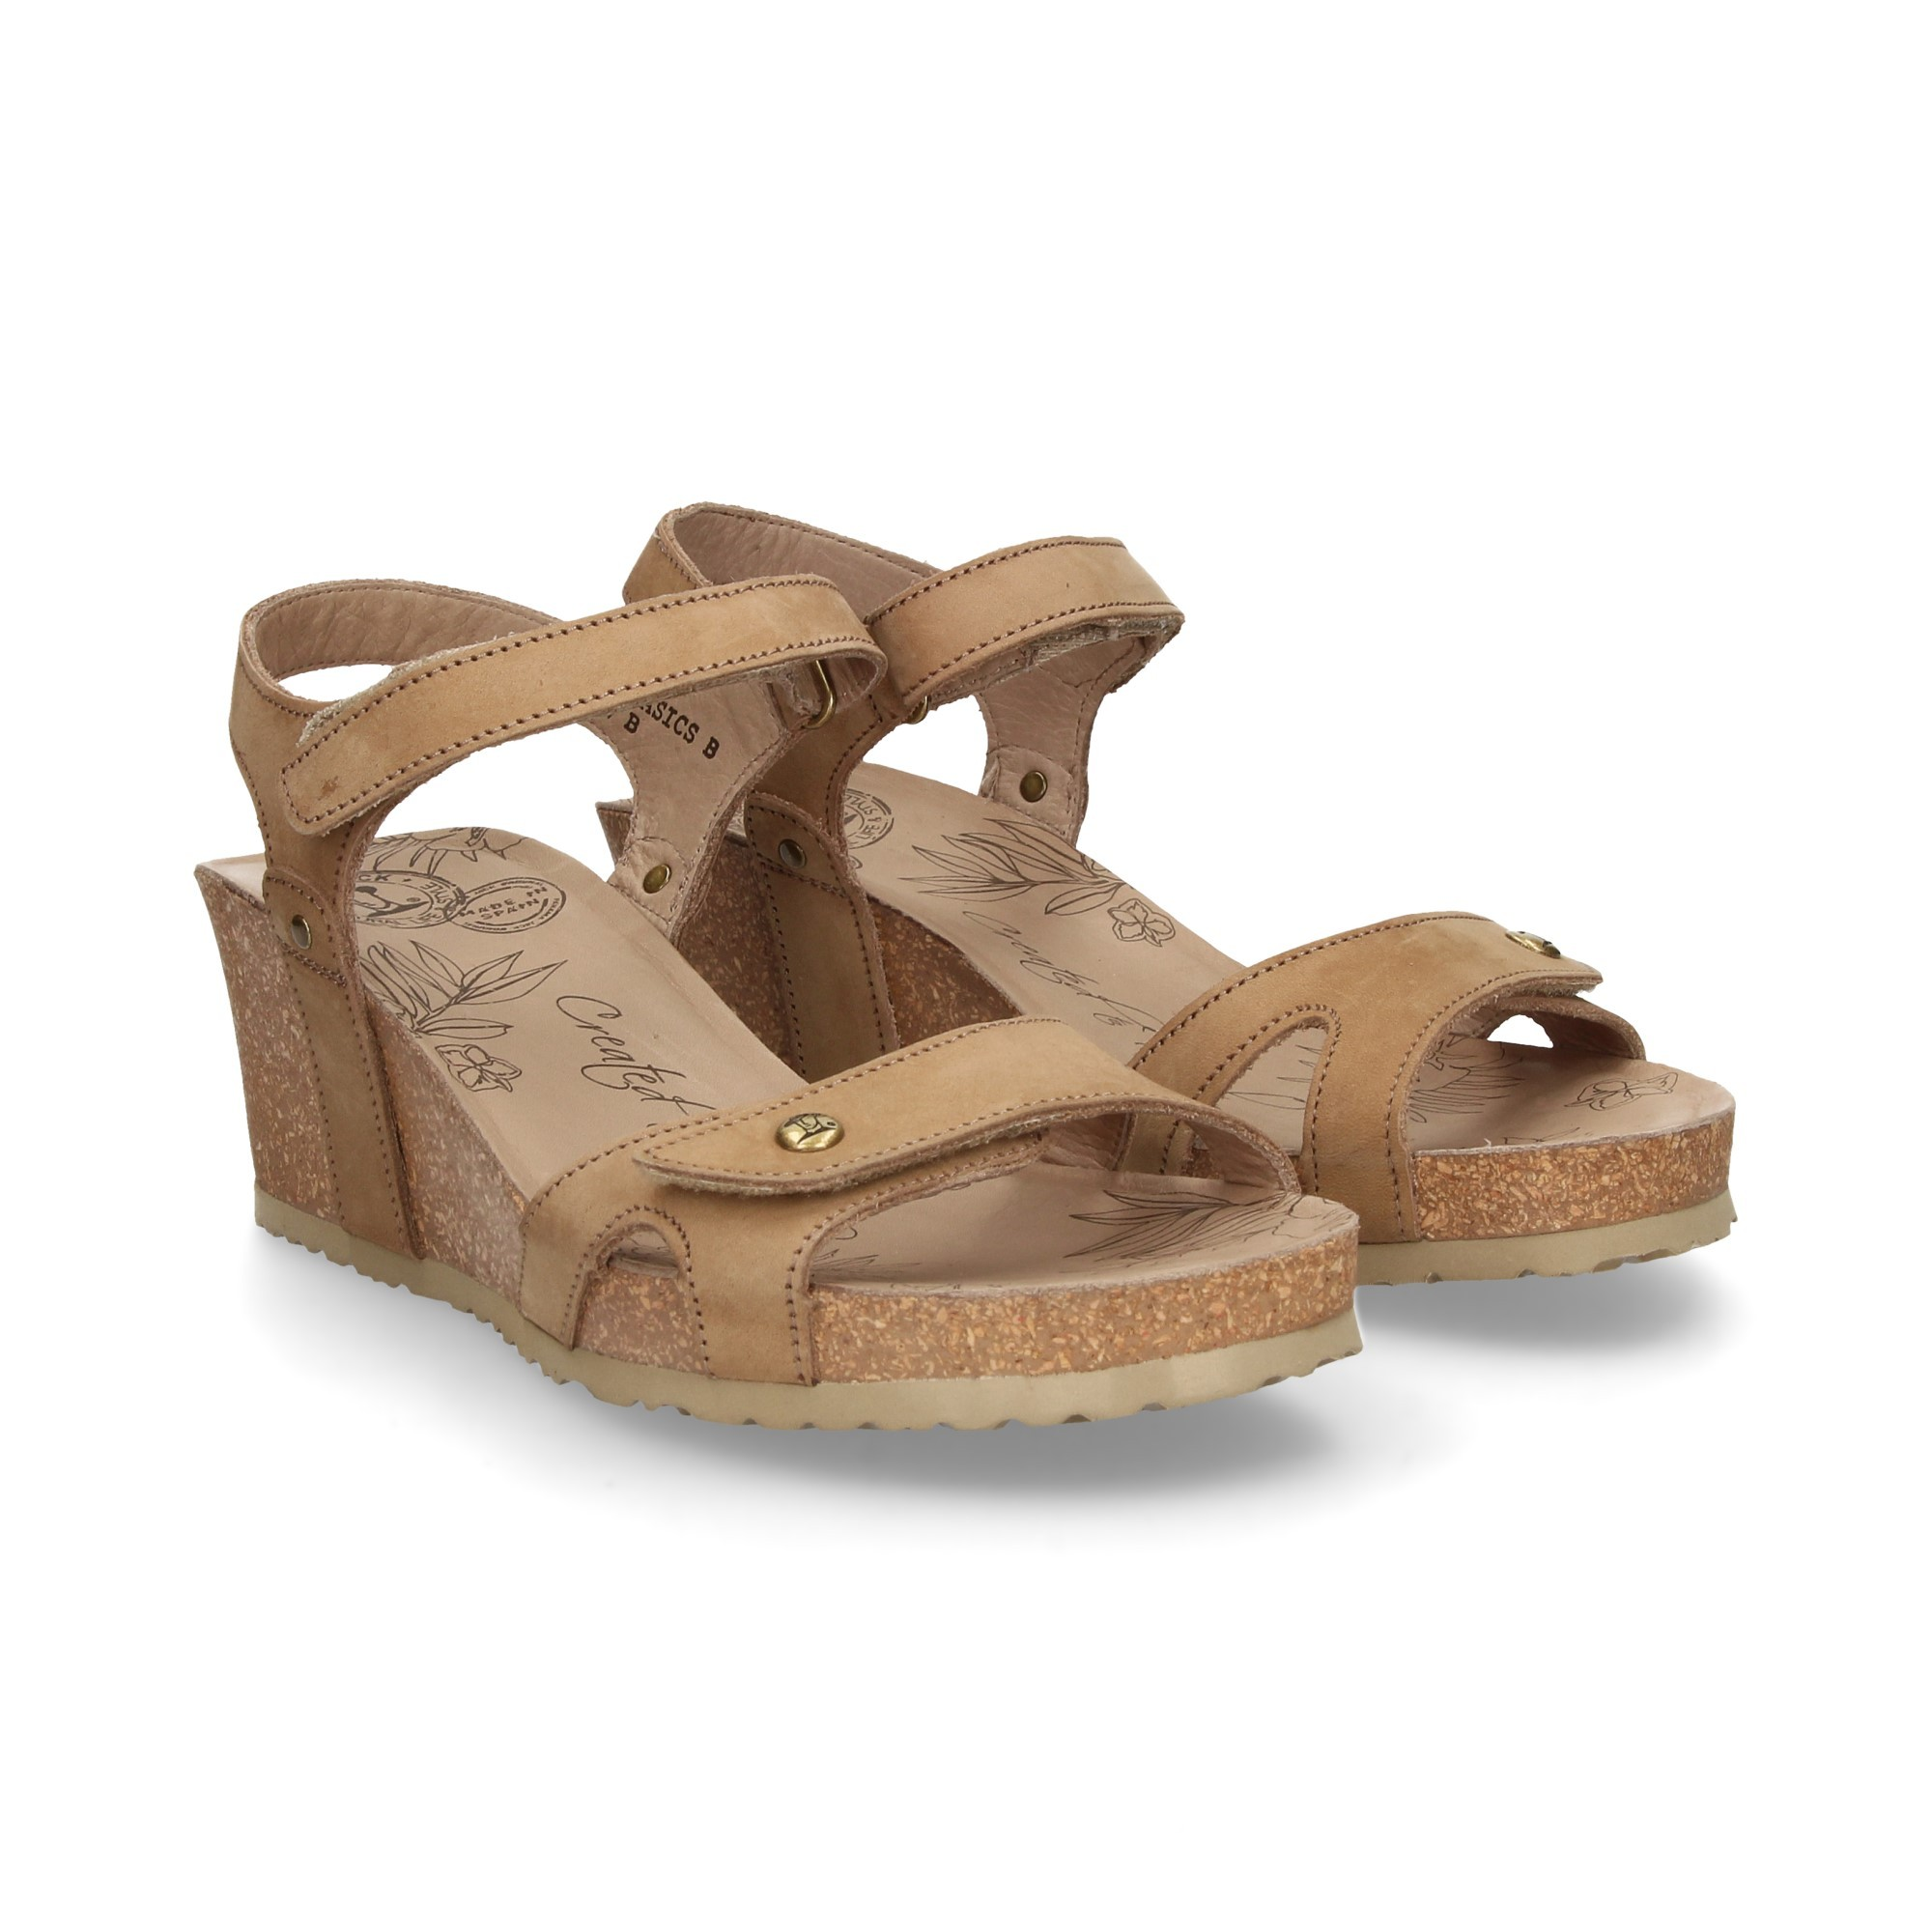 dafbcbb1c684 PANAMA JACK Women s wedge sandals JULIA B3 TAUPE